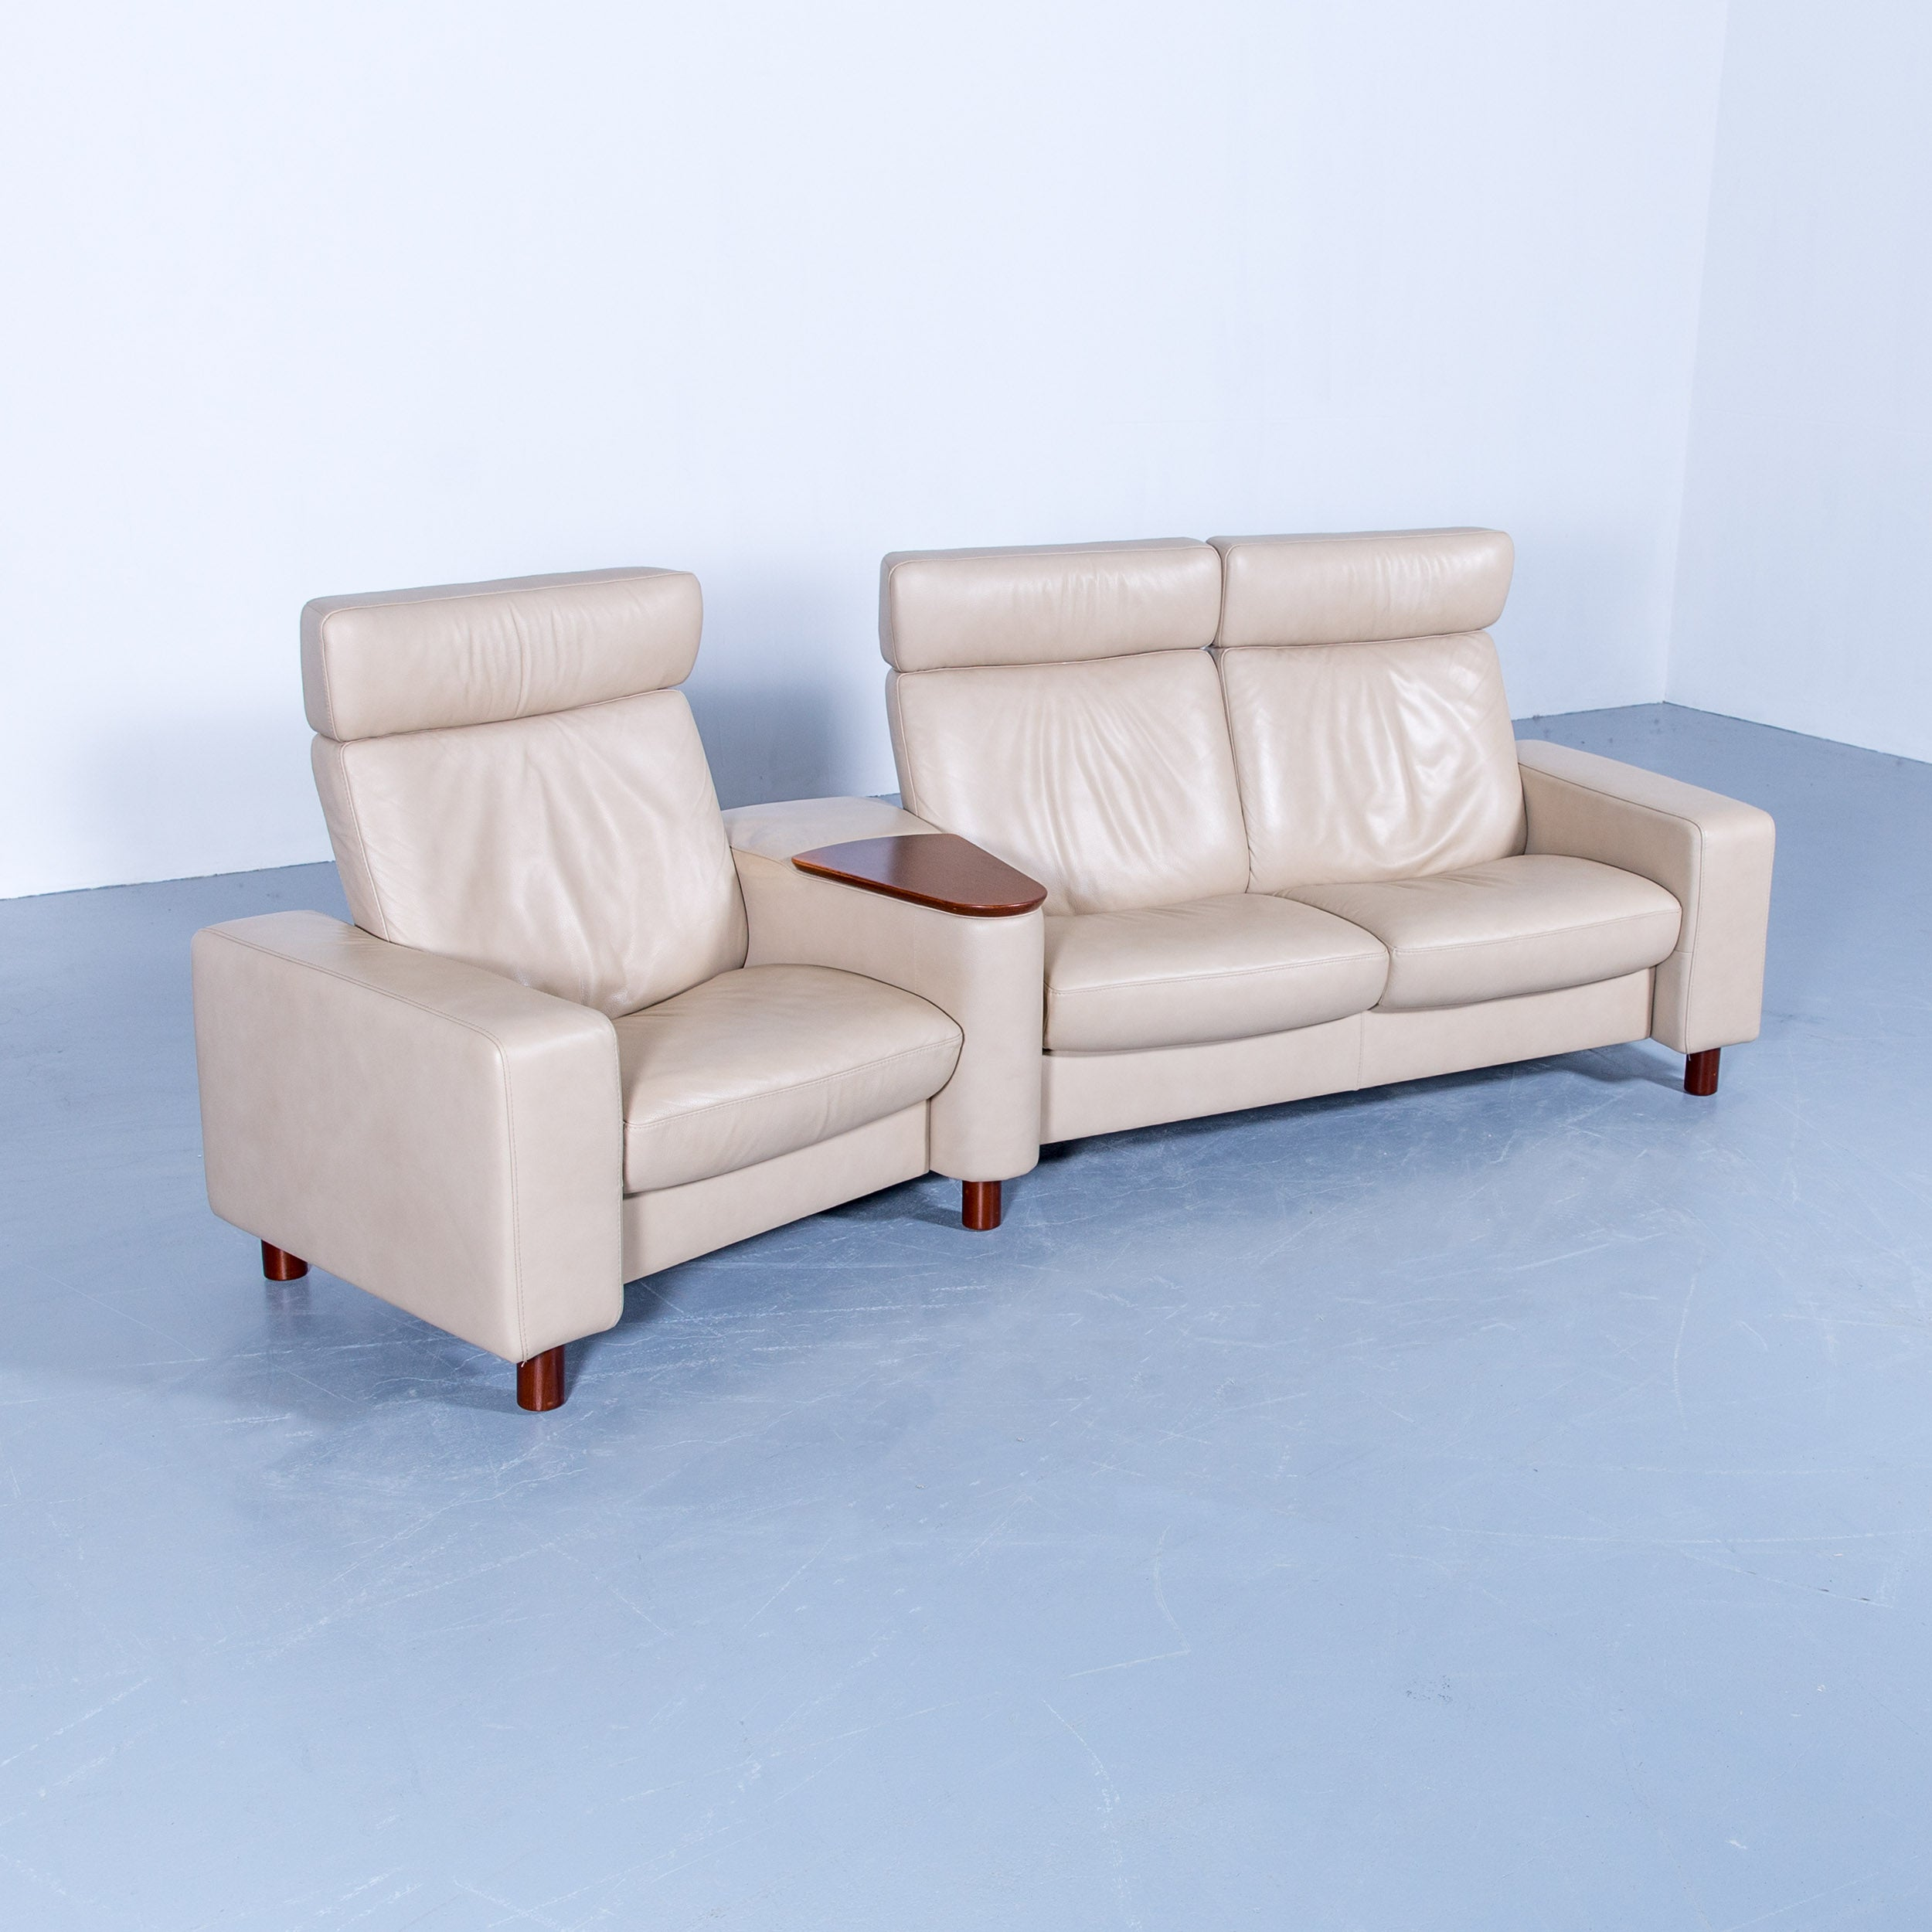 Stressless Ekornes Sessel Ekornes Stressless Space Relax Sofa Beige Crème Leather Tv Recliner Three Seat